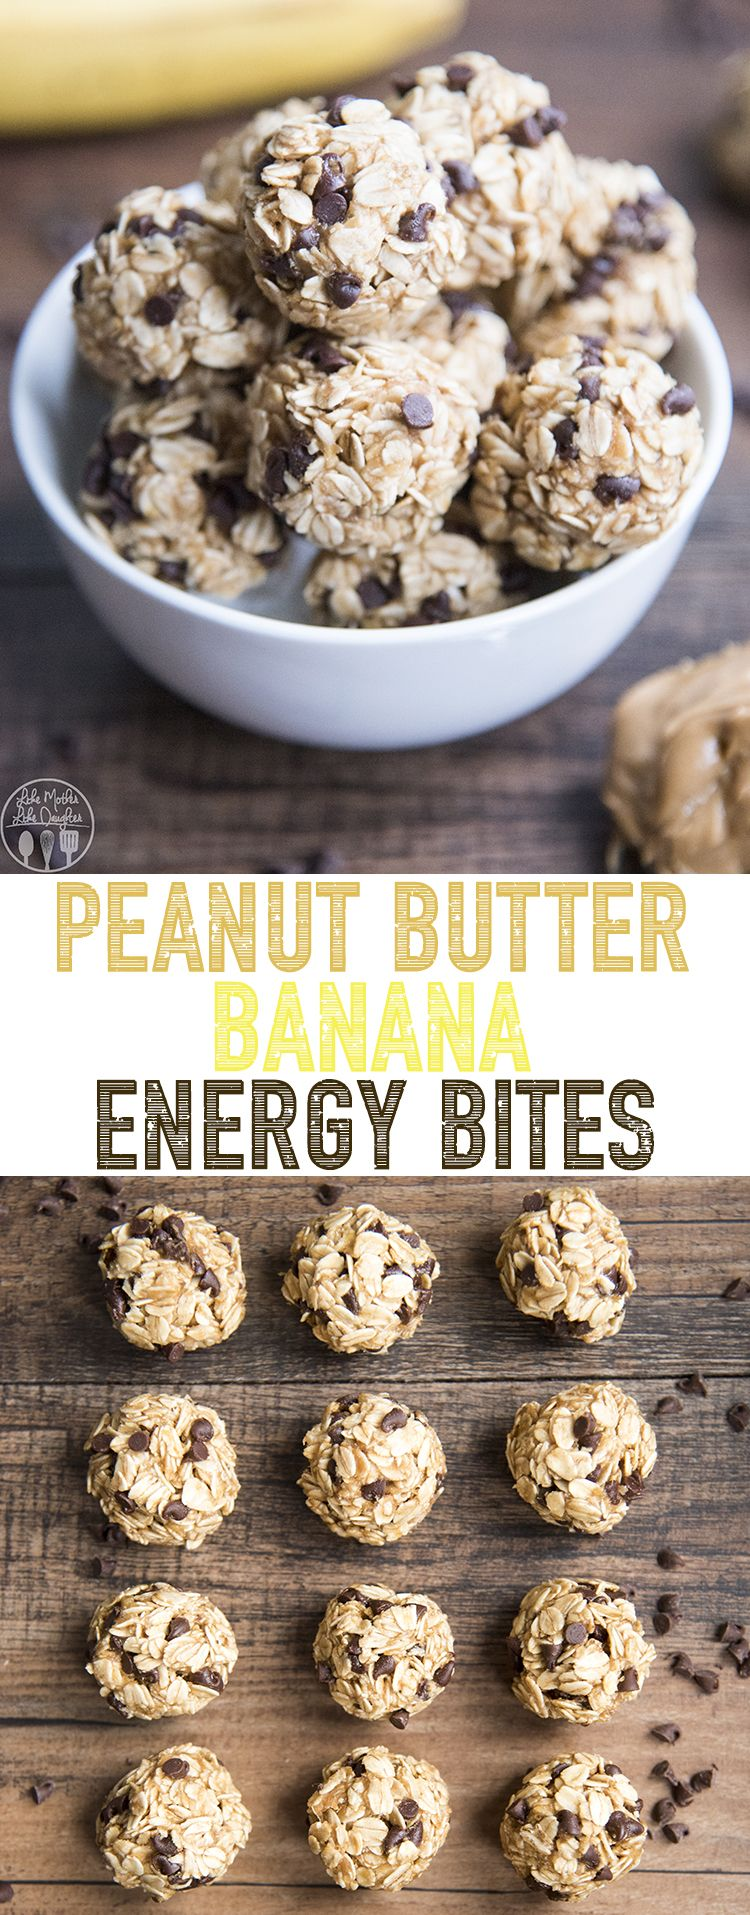 Peanut Butter Banana Energy Bites